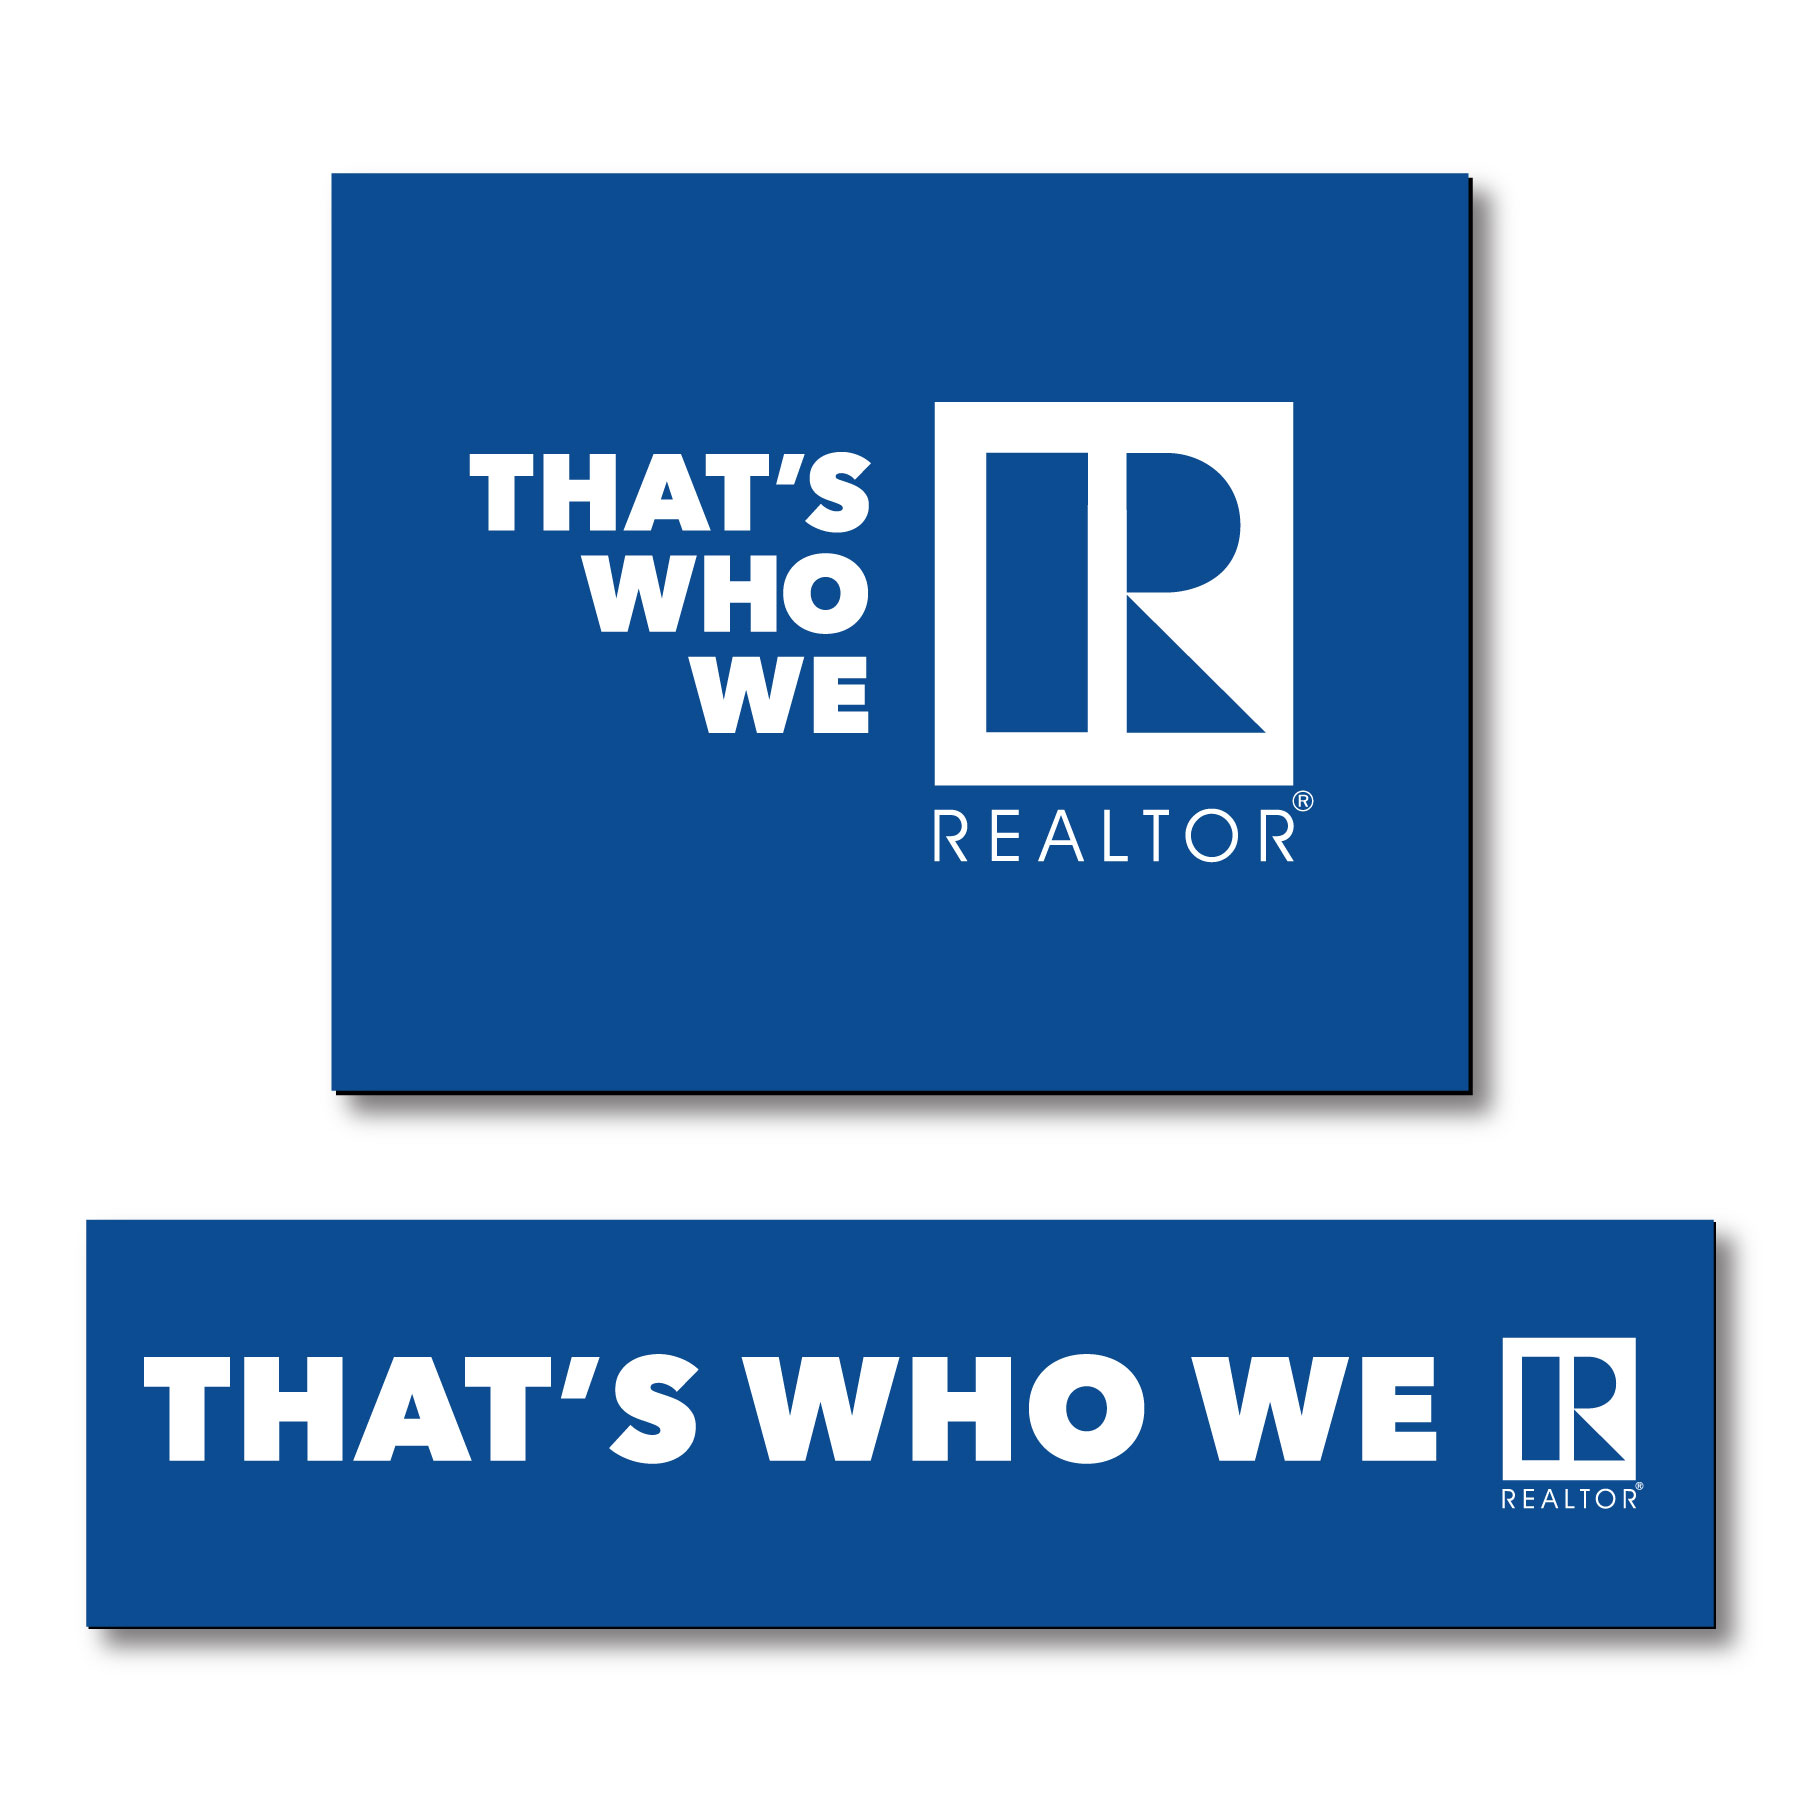 """Thats Who We R"" Car Magnets twwr,ThatsWhoWeR,Thats,TWWR,ThatWho,ThatsWho,Twwr,Thats,Whos,We,Ares,Magnets,Magents,Mags,Stickies,Sticky,cars,automobiles,autos,doors"